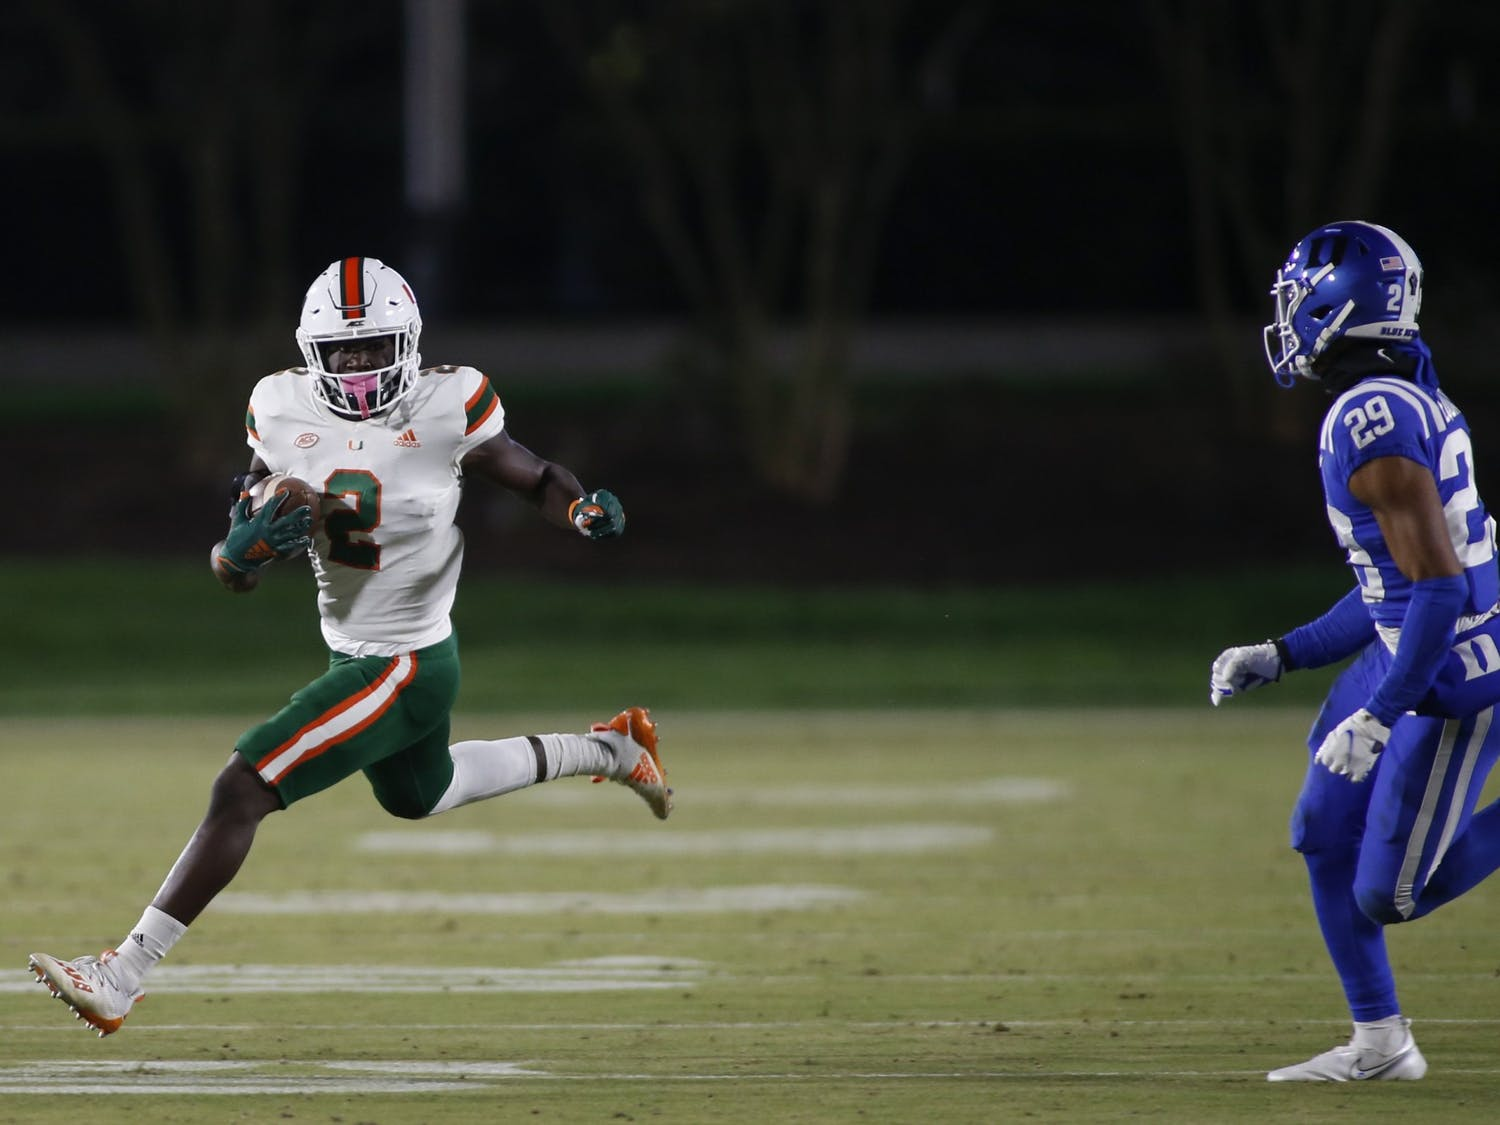 Duke struggled to contain Miami's explosive offense Saturday night, giving up 524 total yards to the Hurricanes.